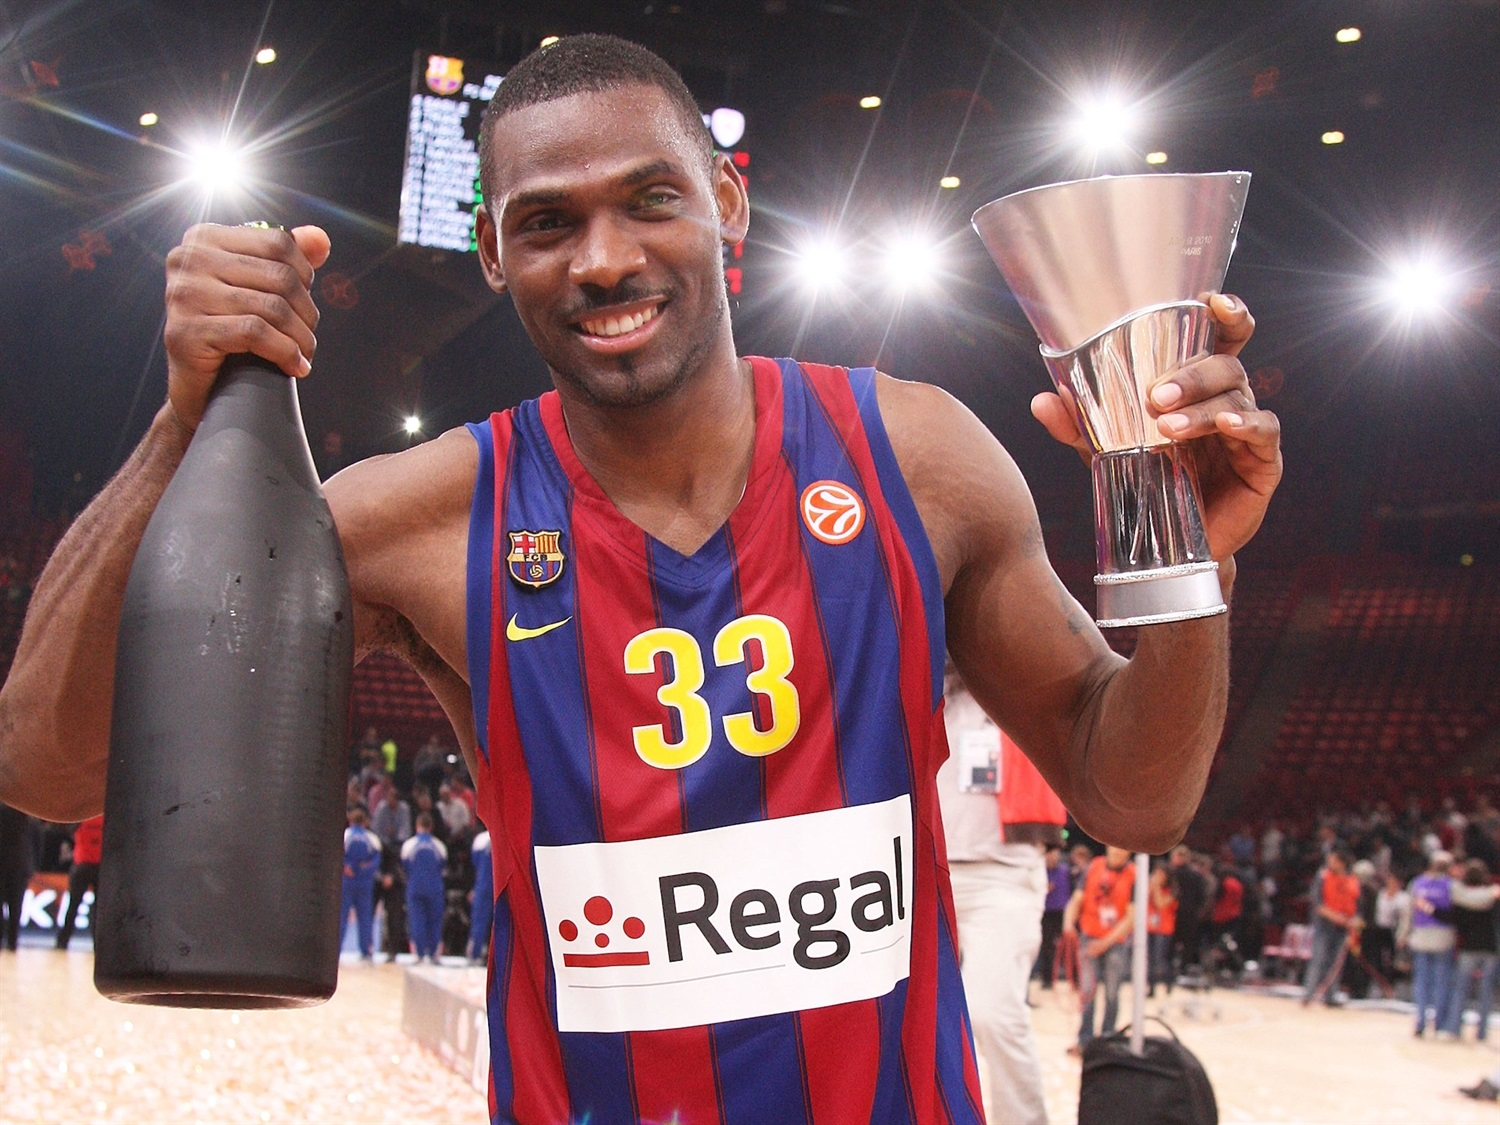 Pete Mickeal - Regal FC Barcelona Champ Euroleague 2010 - Final Four Paris 2010 - EB09